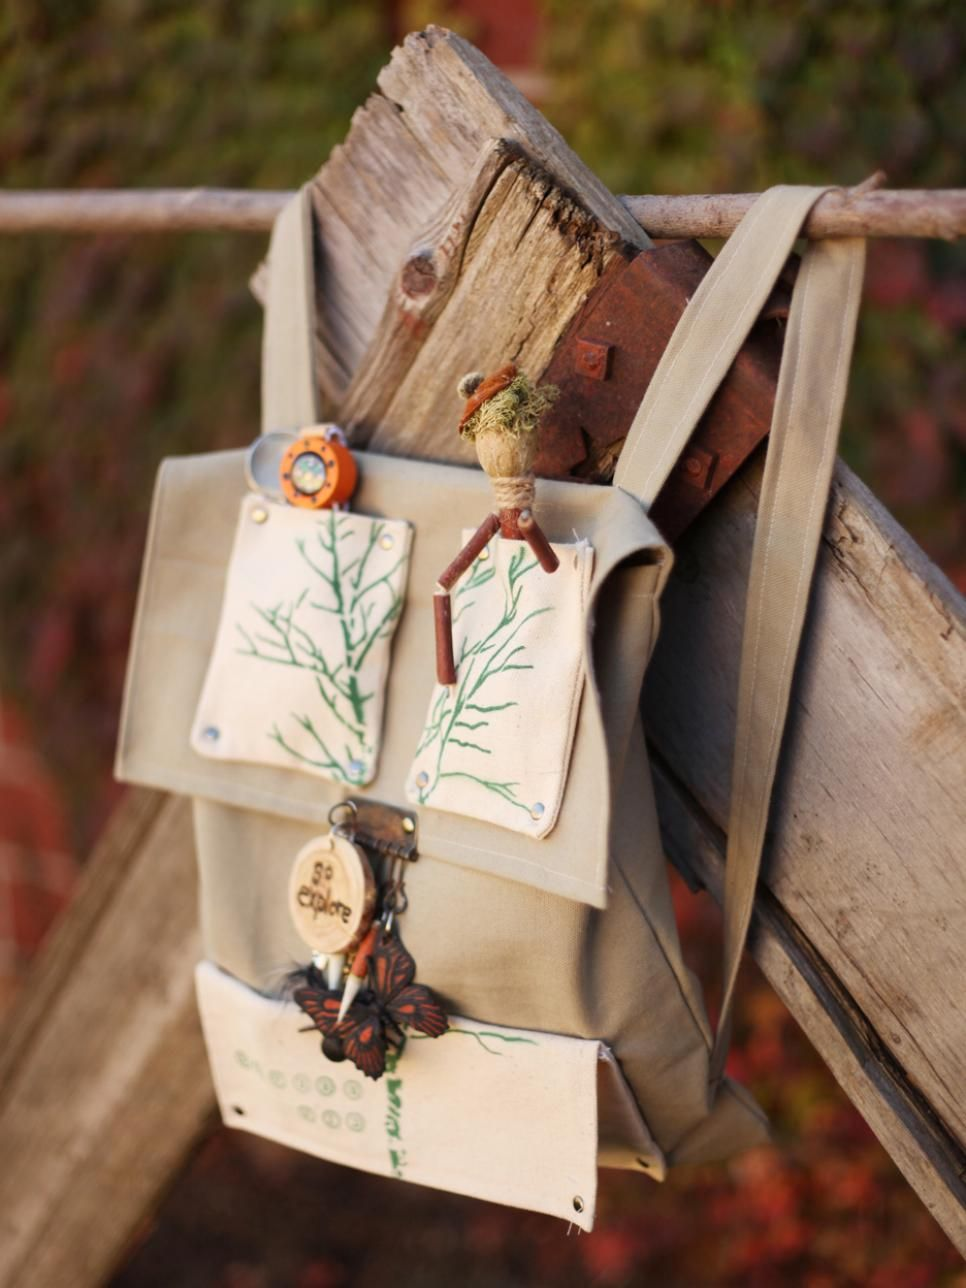 Kids are natural explorers. Outfit their outdoor adventures with a sturdy backpack filled with a handmade nature press, bug jars, sifter and more. Learn how to sew the backpack and make its crafty contents with our step-by-step instructions.